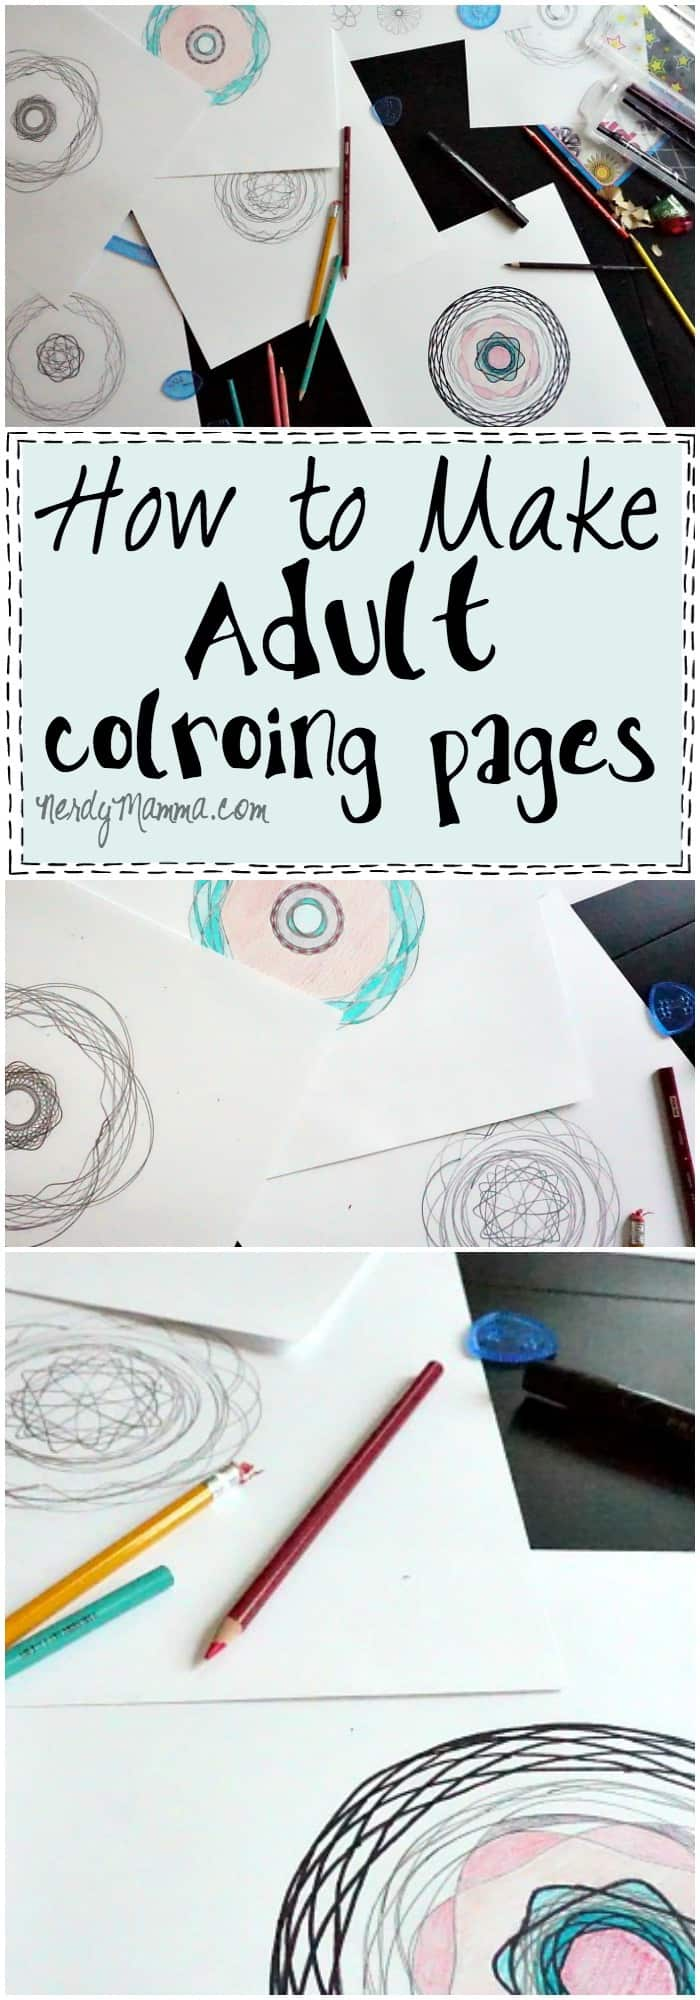 Coloring Pages For Adults Tutorial : How to make adult coloring pages nerdy mamma